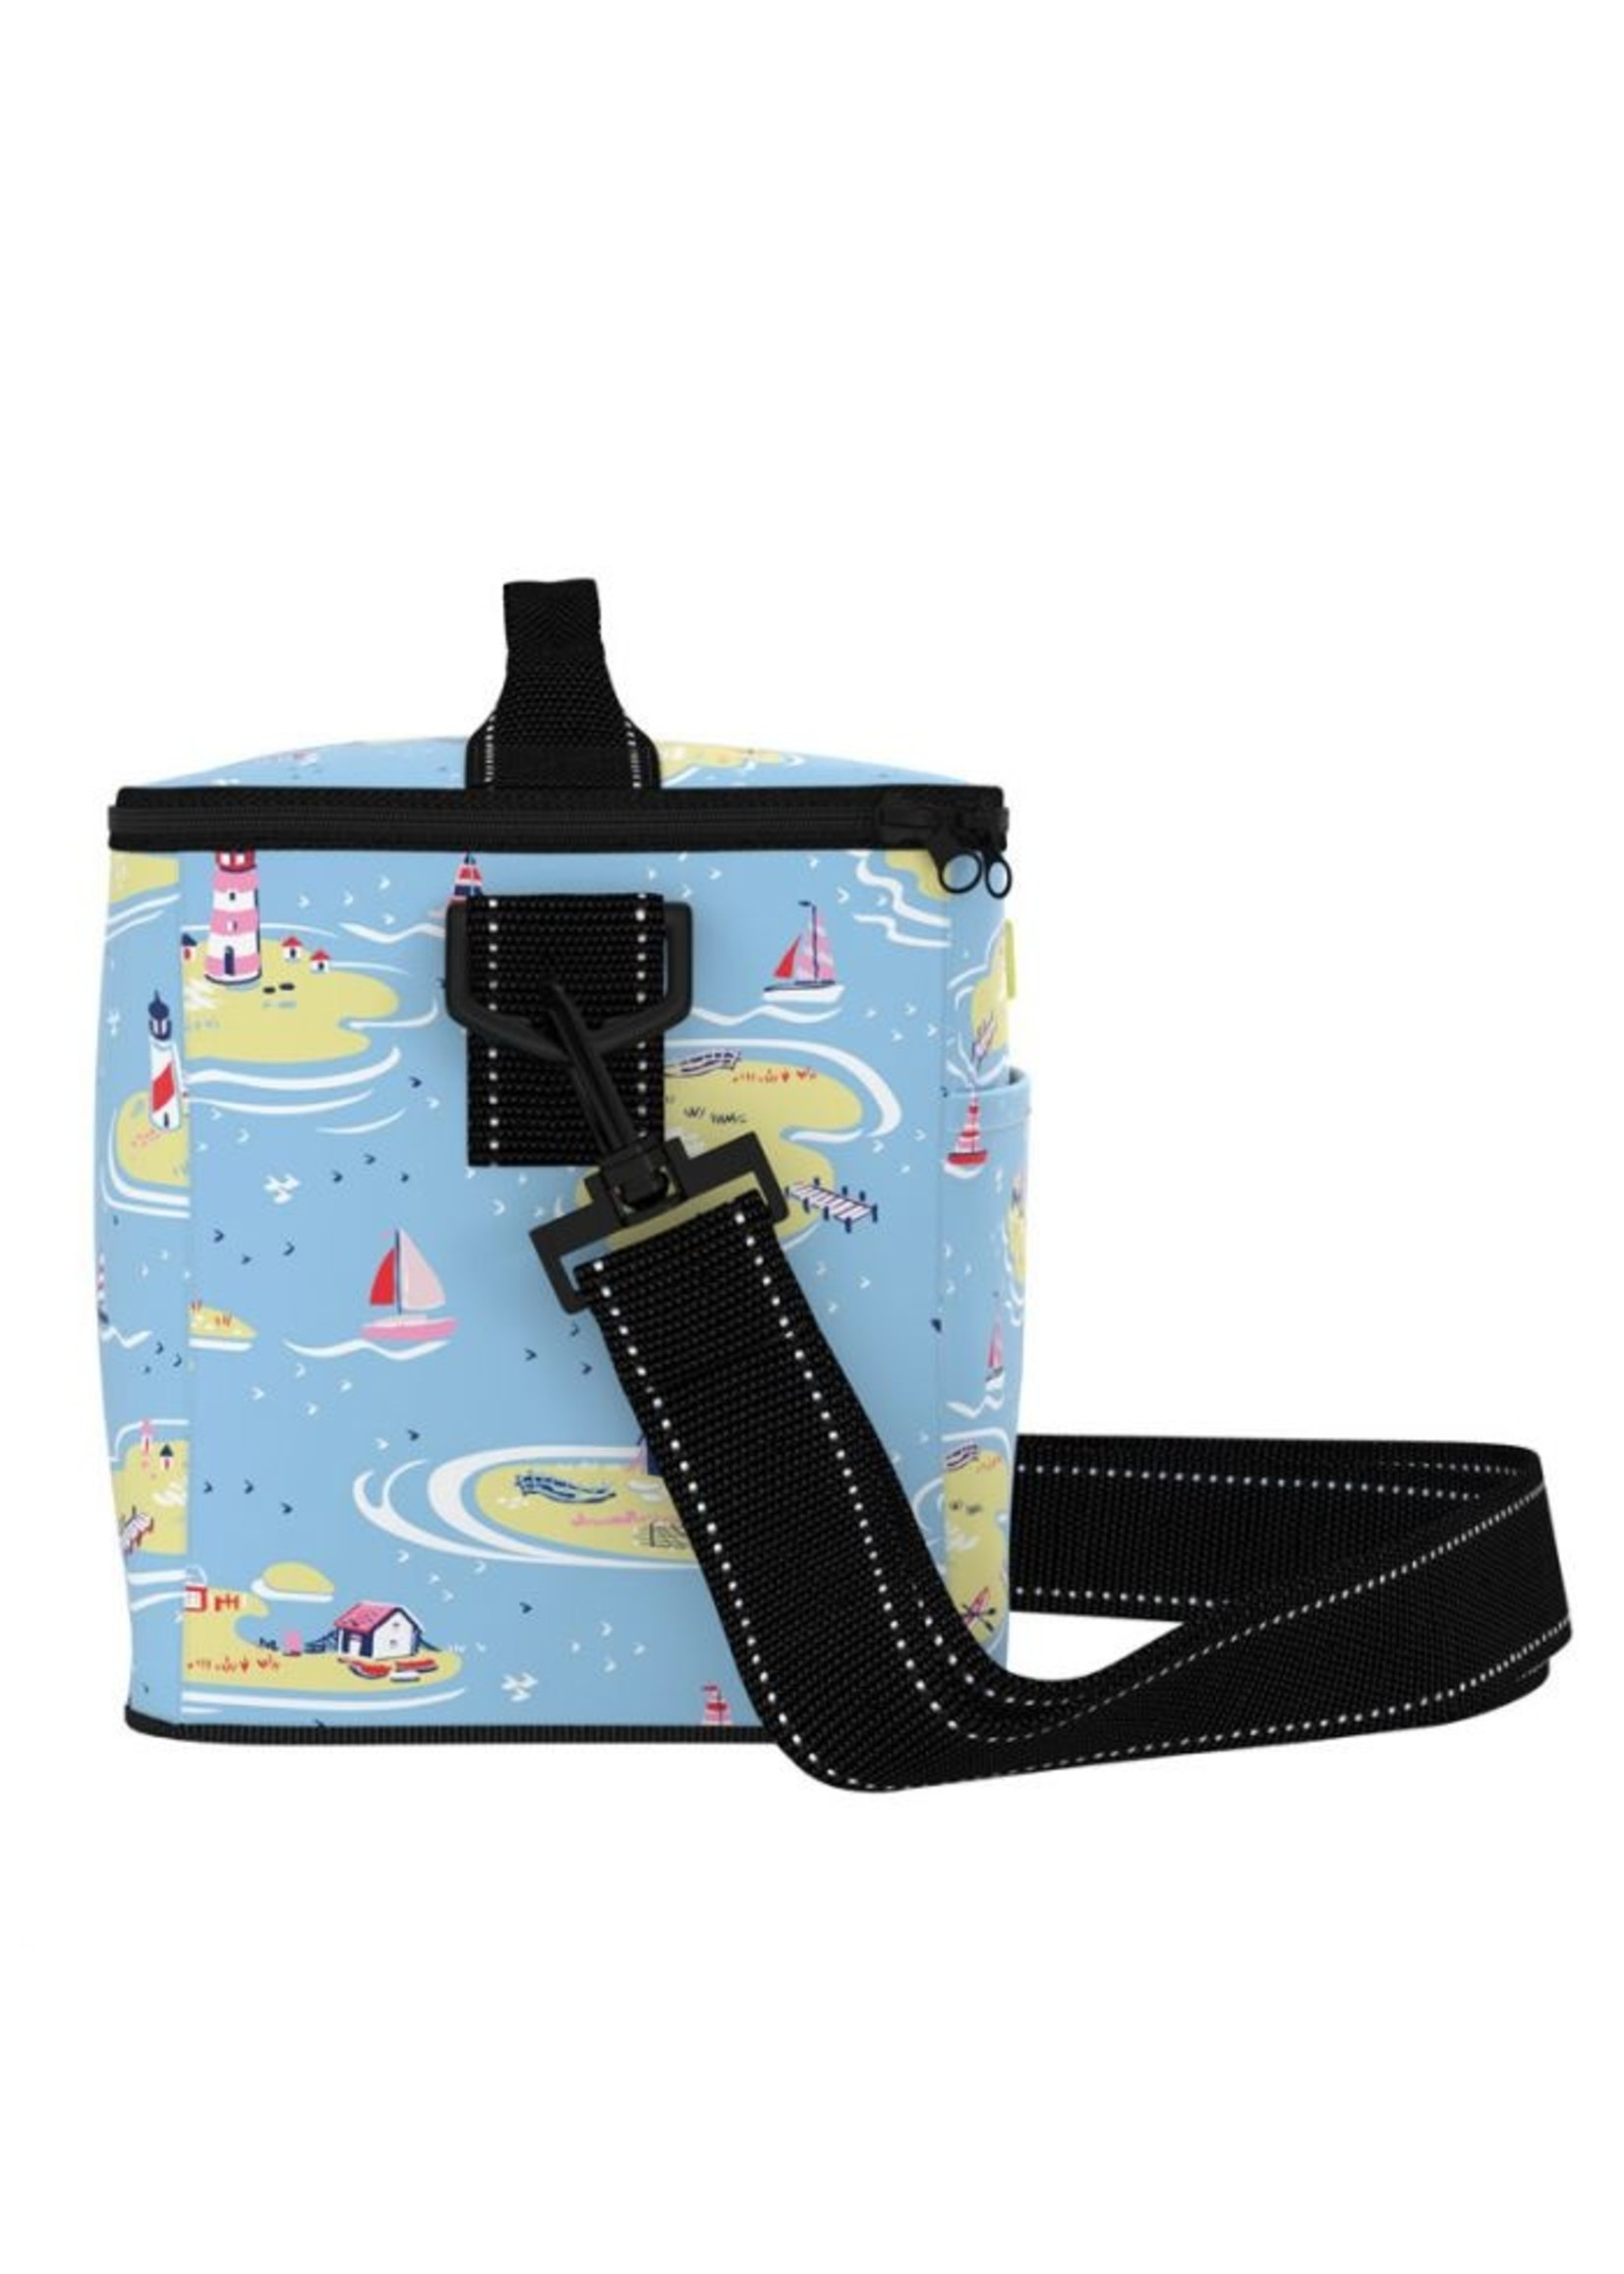 scout by bungalow Scout Ferris Cooler Ships and Giggles